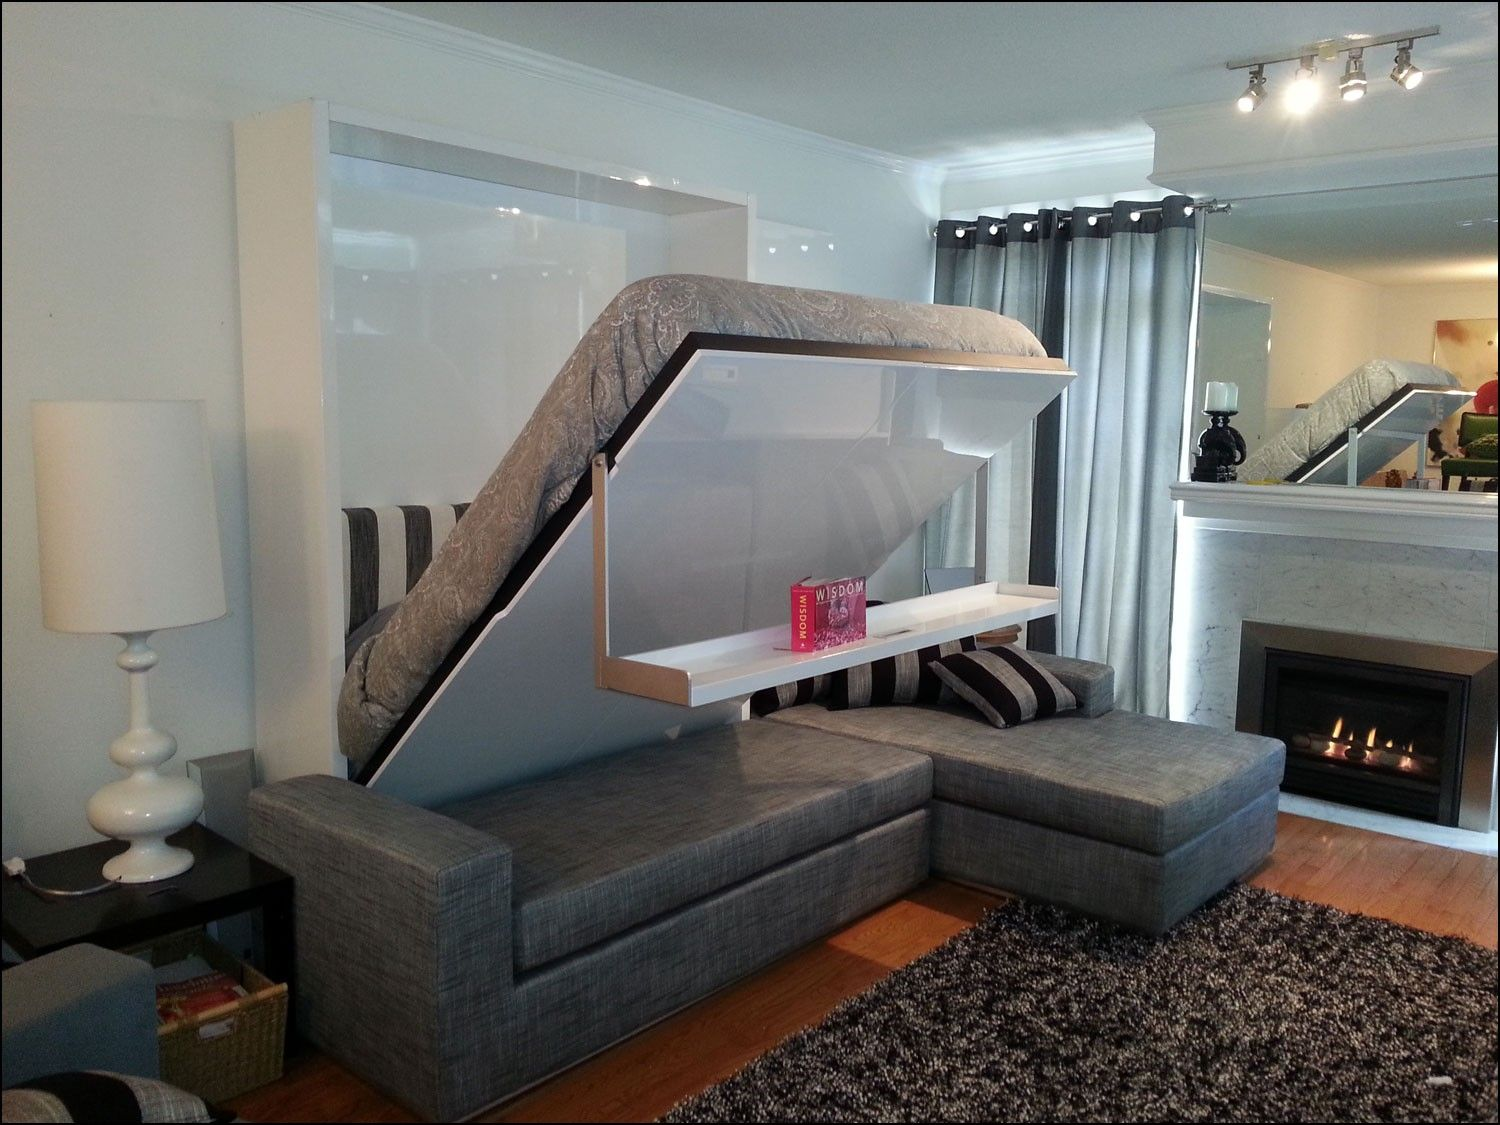 murphy bed over sofa combo house pinterest murphy bed small rh pinterest com wall bed over sofa murphy bed over sofa uk